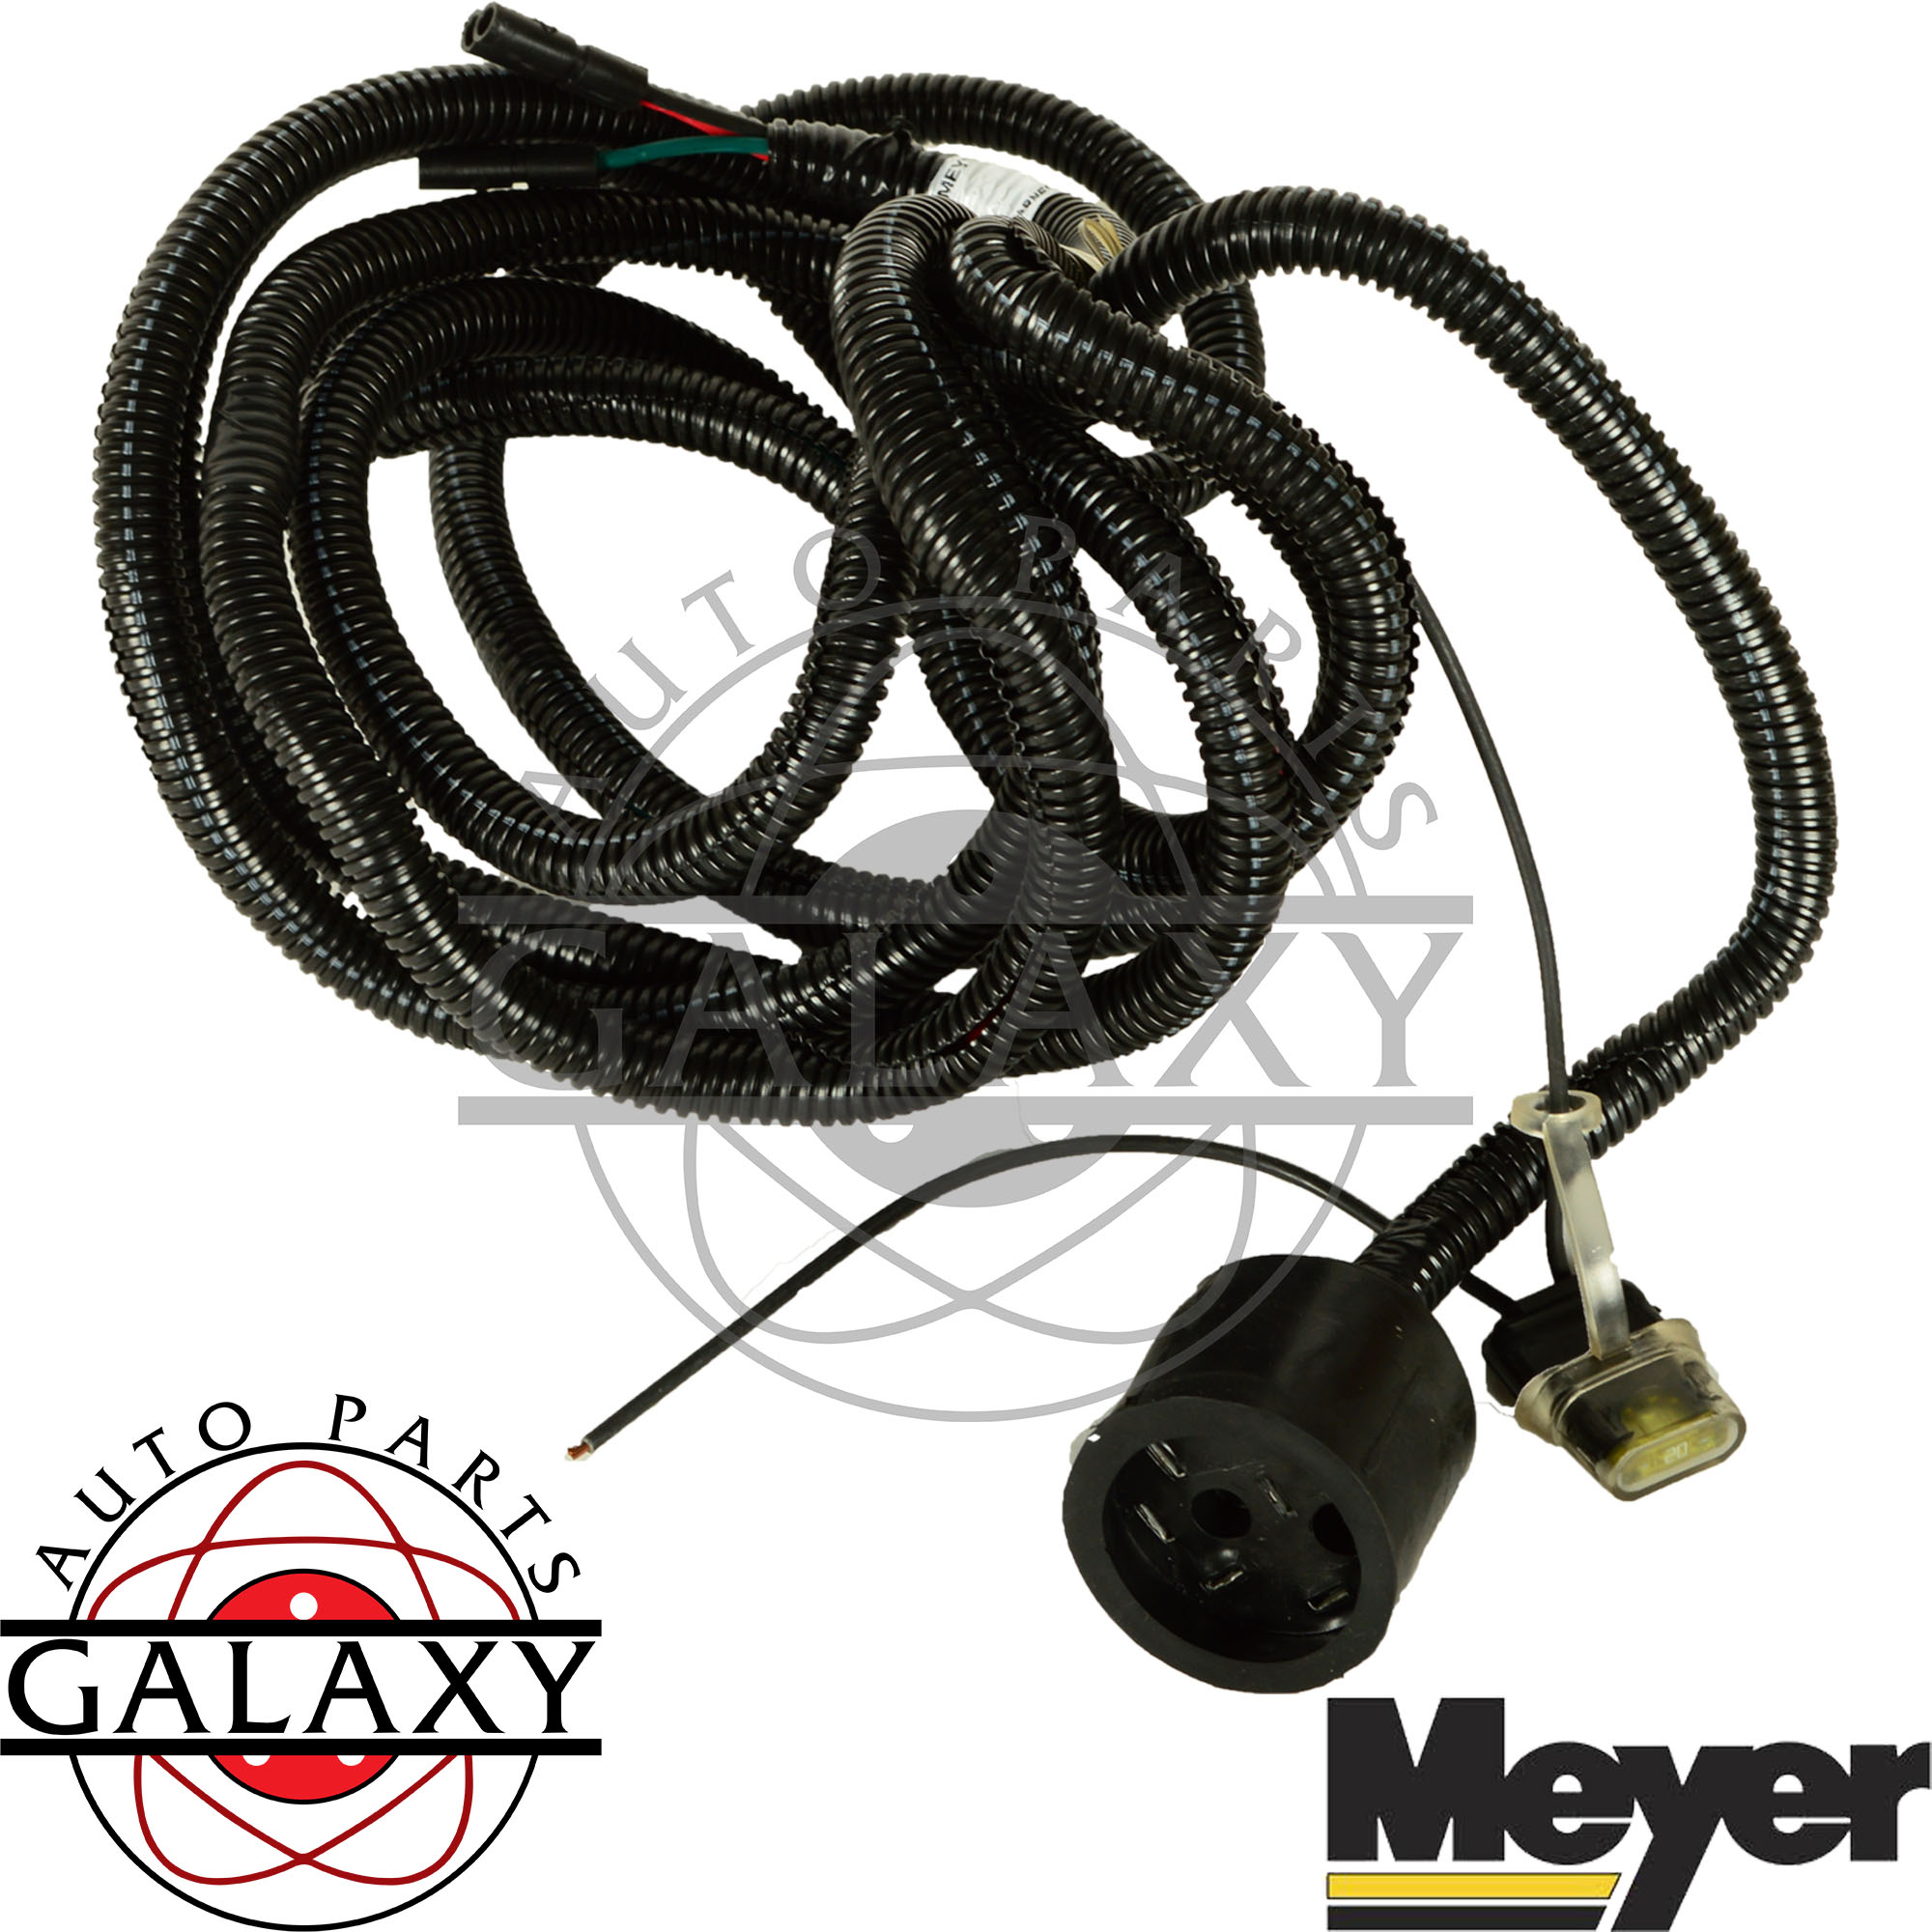 meyer snow plow toggle switch wiring diagram meyer meyer electro touch snow plow control wiring diagram diagram on meyer snow plow toggle switch wiring